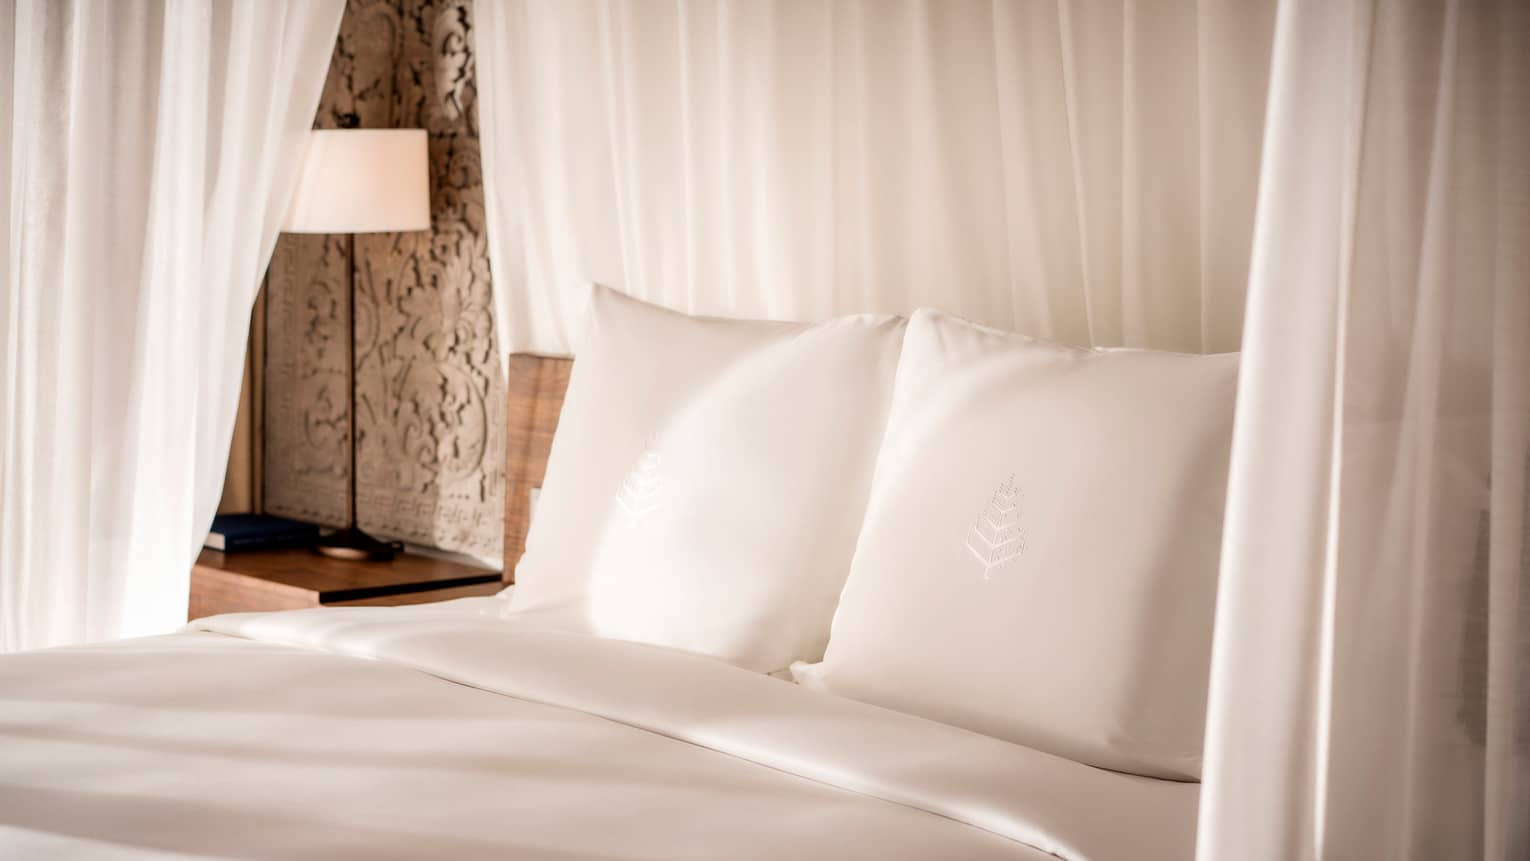 Close-up of bed headboard, white pillows with Four Seasons logo embroidered, crisp white linens, white curtains